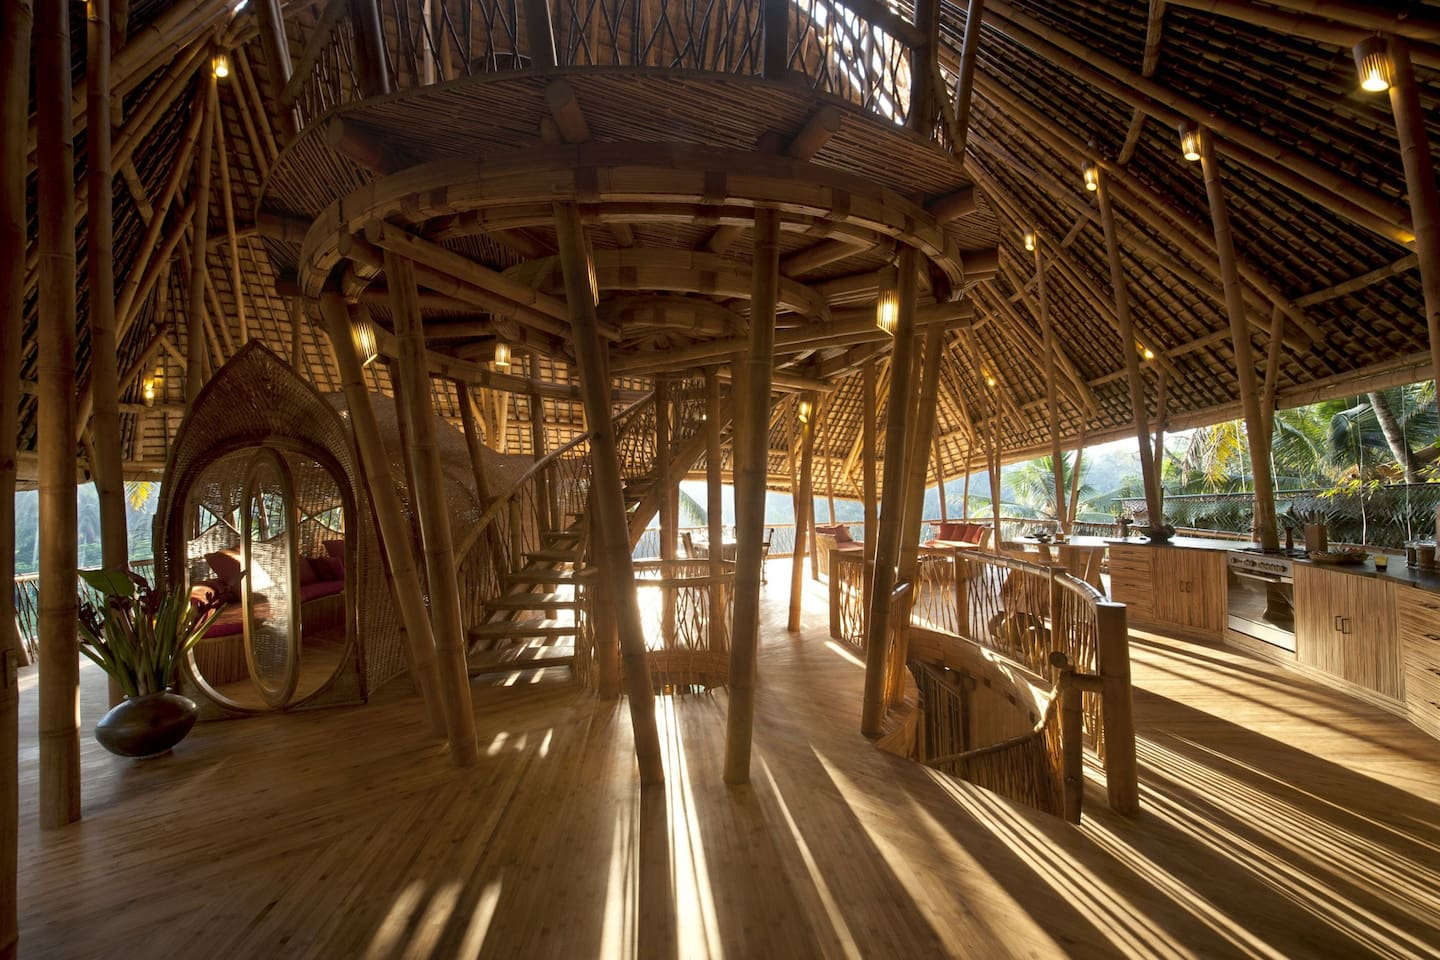 All bamboo treehouse in Ubud village by the river.